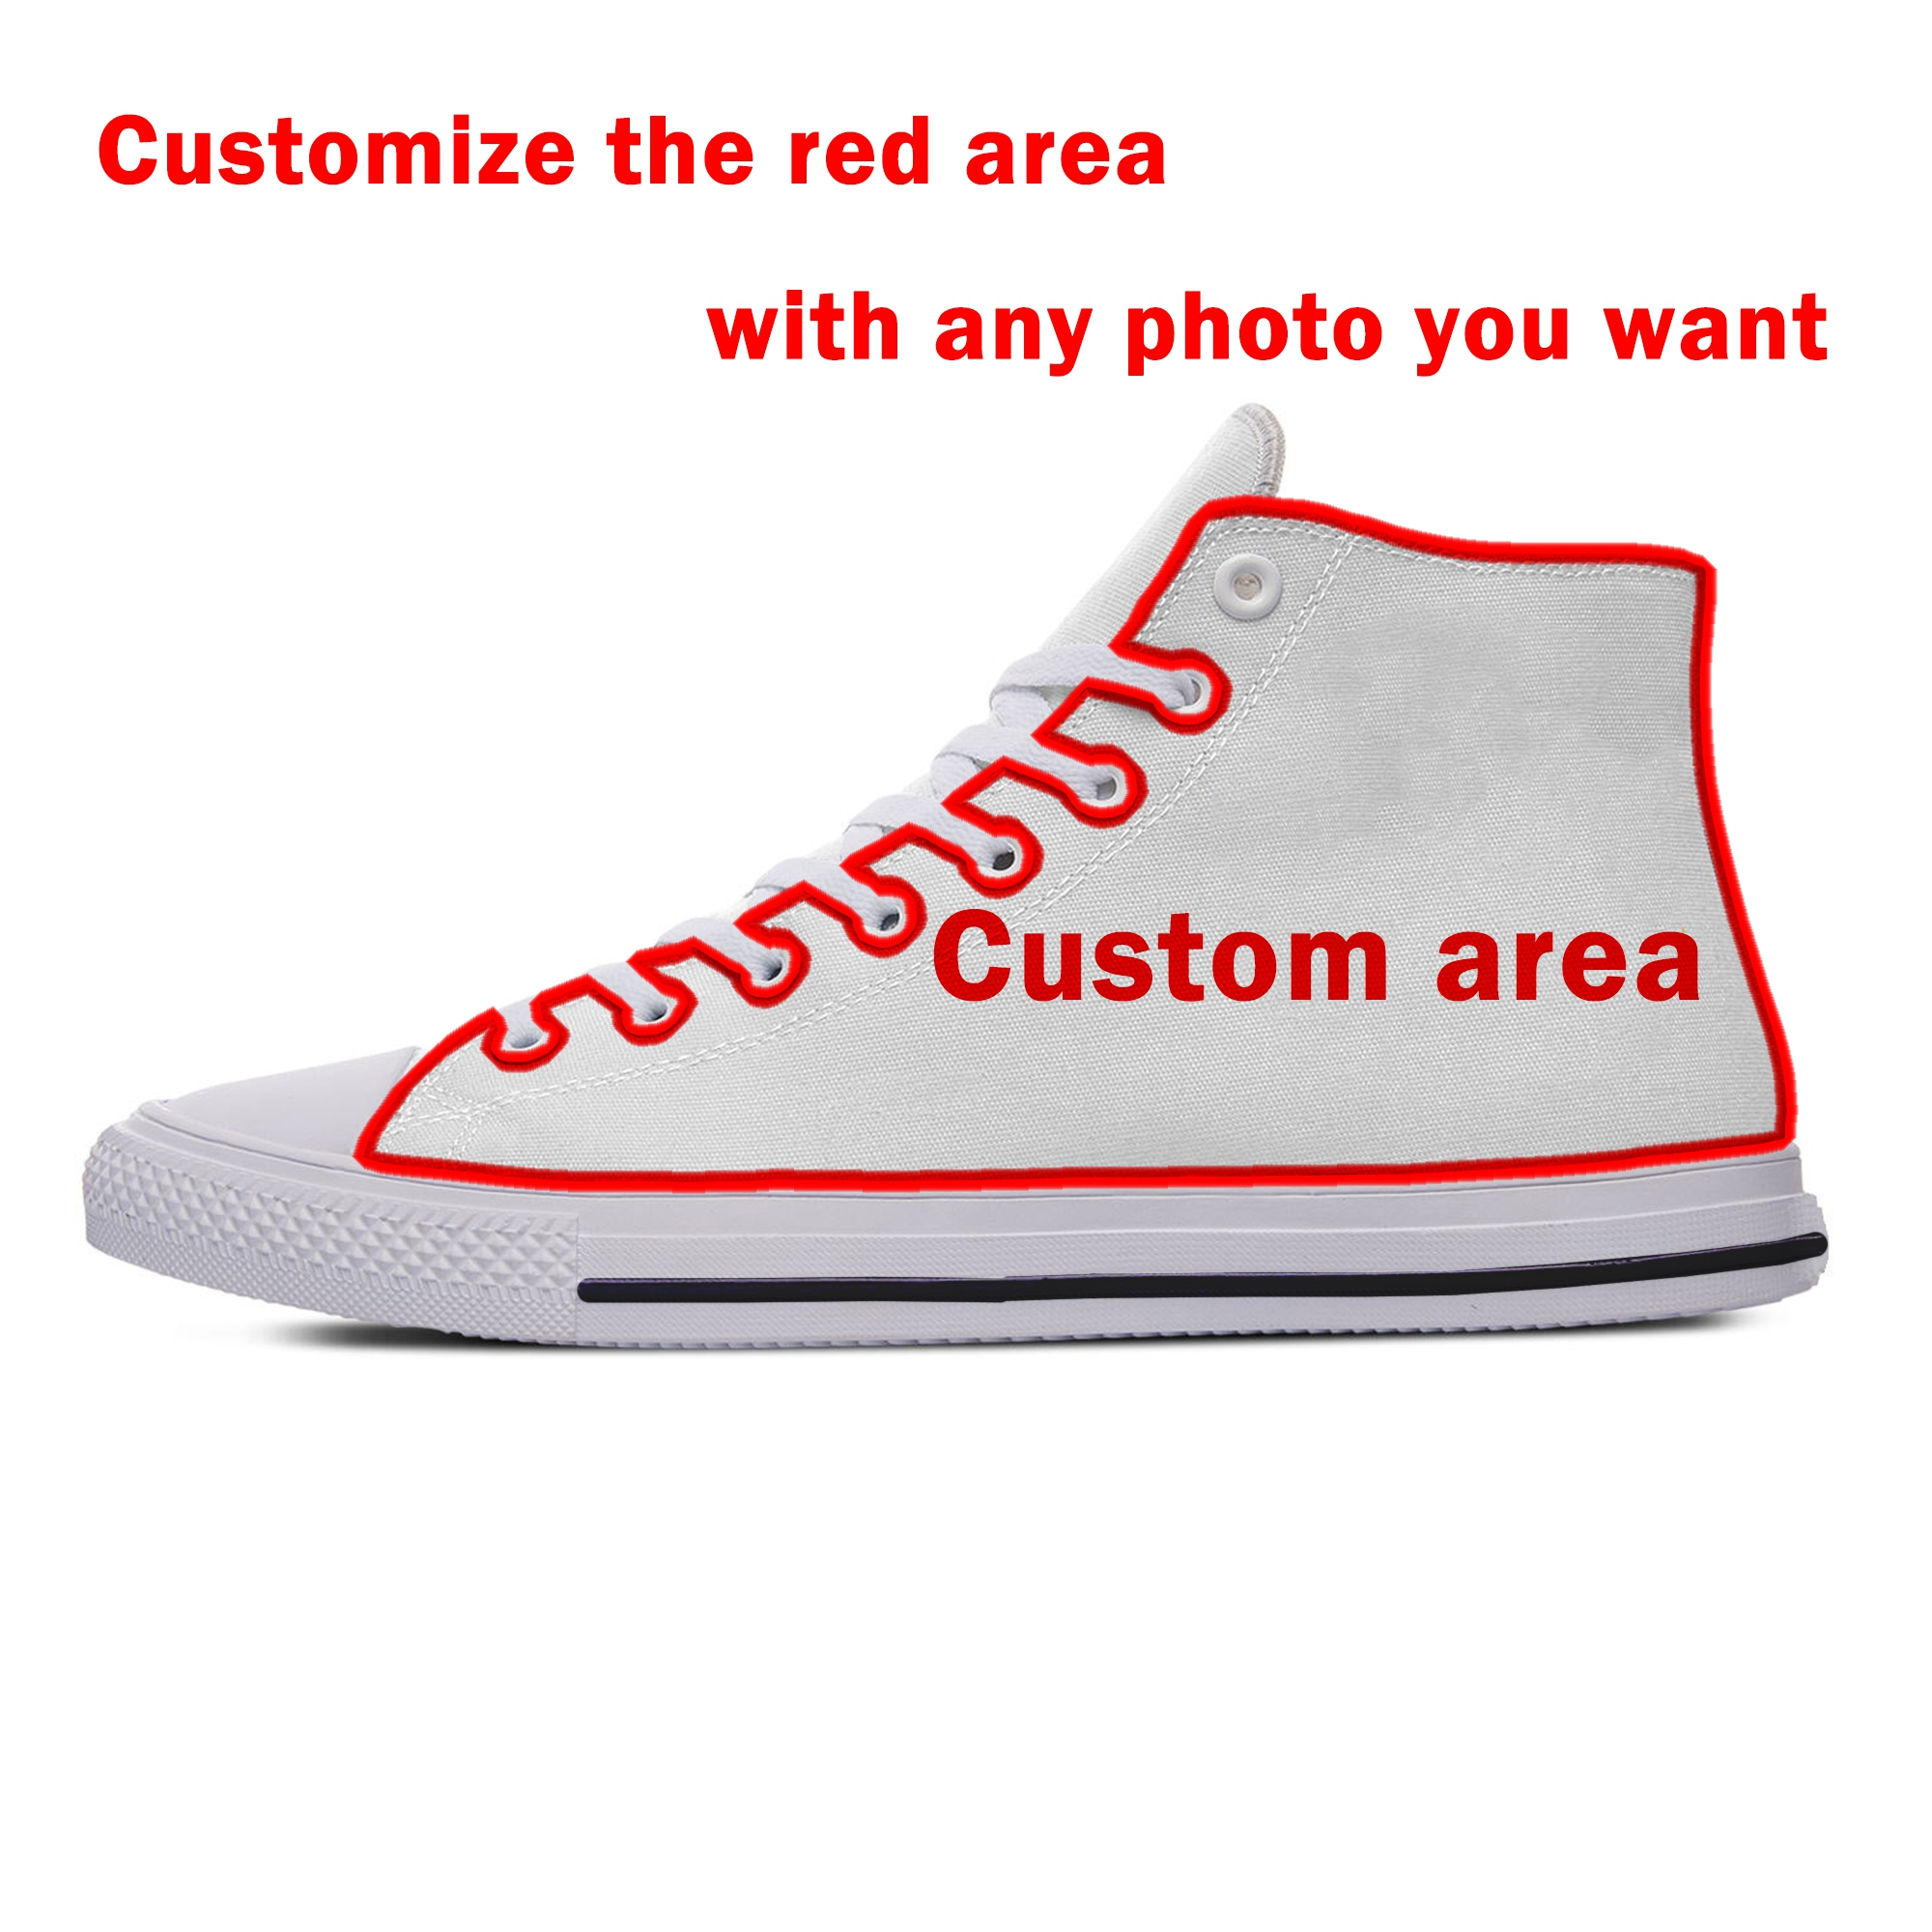 Custom Shoes 2020 Hot Fashion Classical Breathable Lightweight DIY Sneakers 3D Printed Any Photo You Want Casual Men Women Shoes